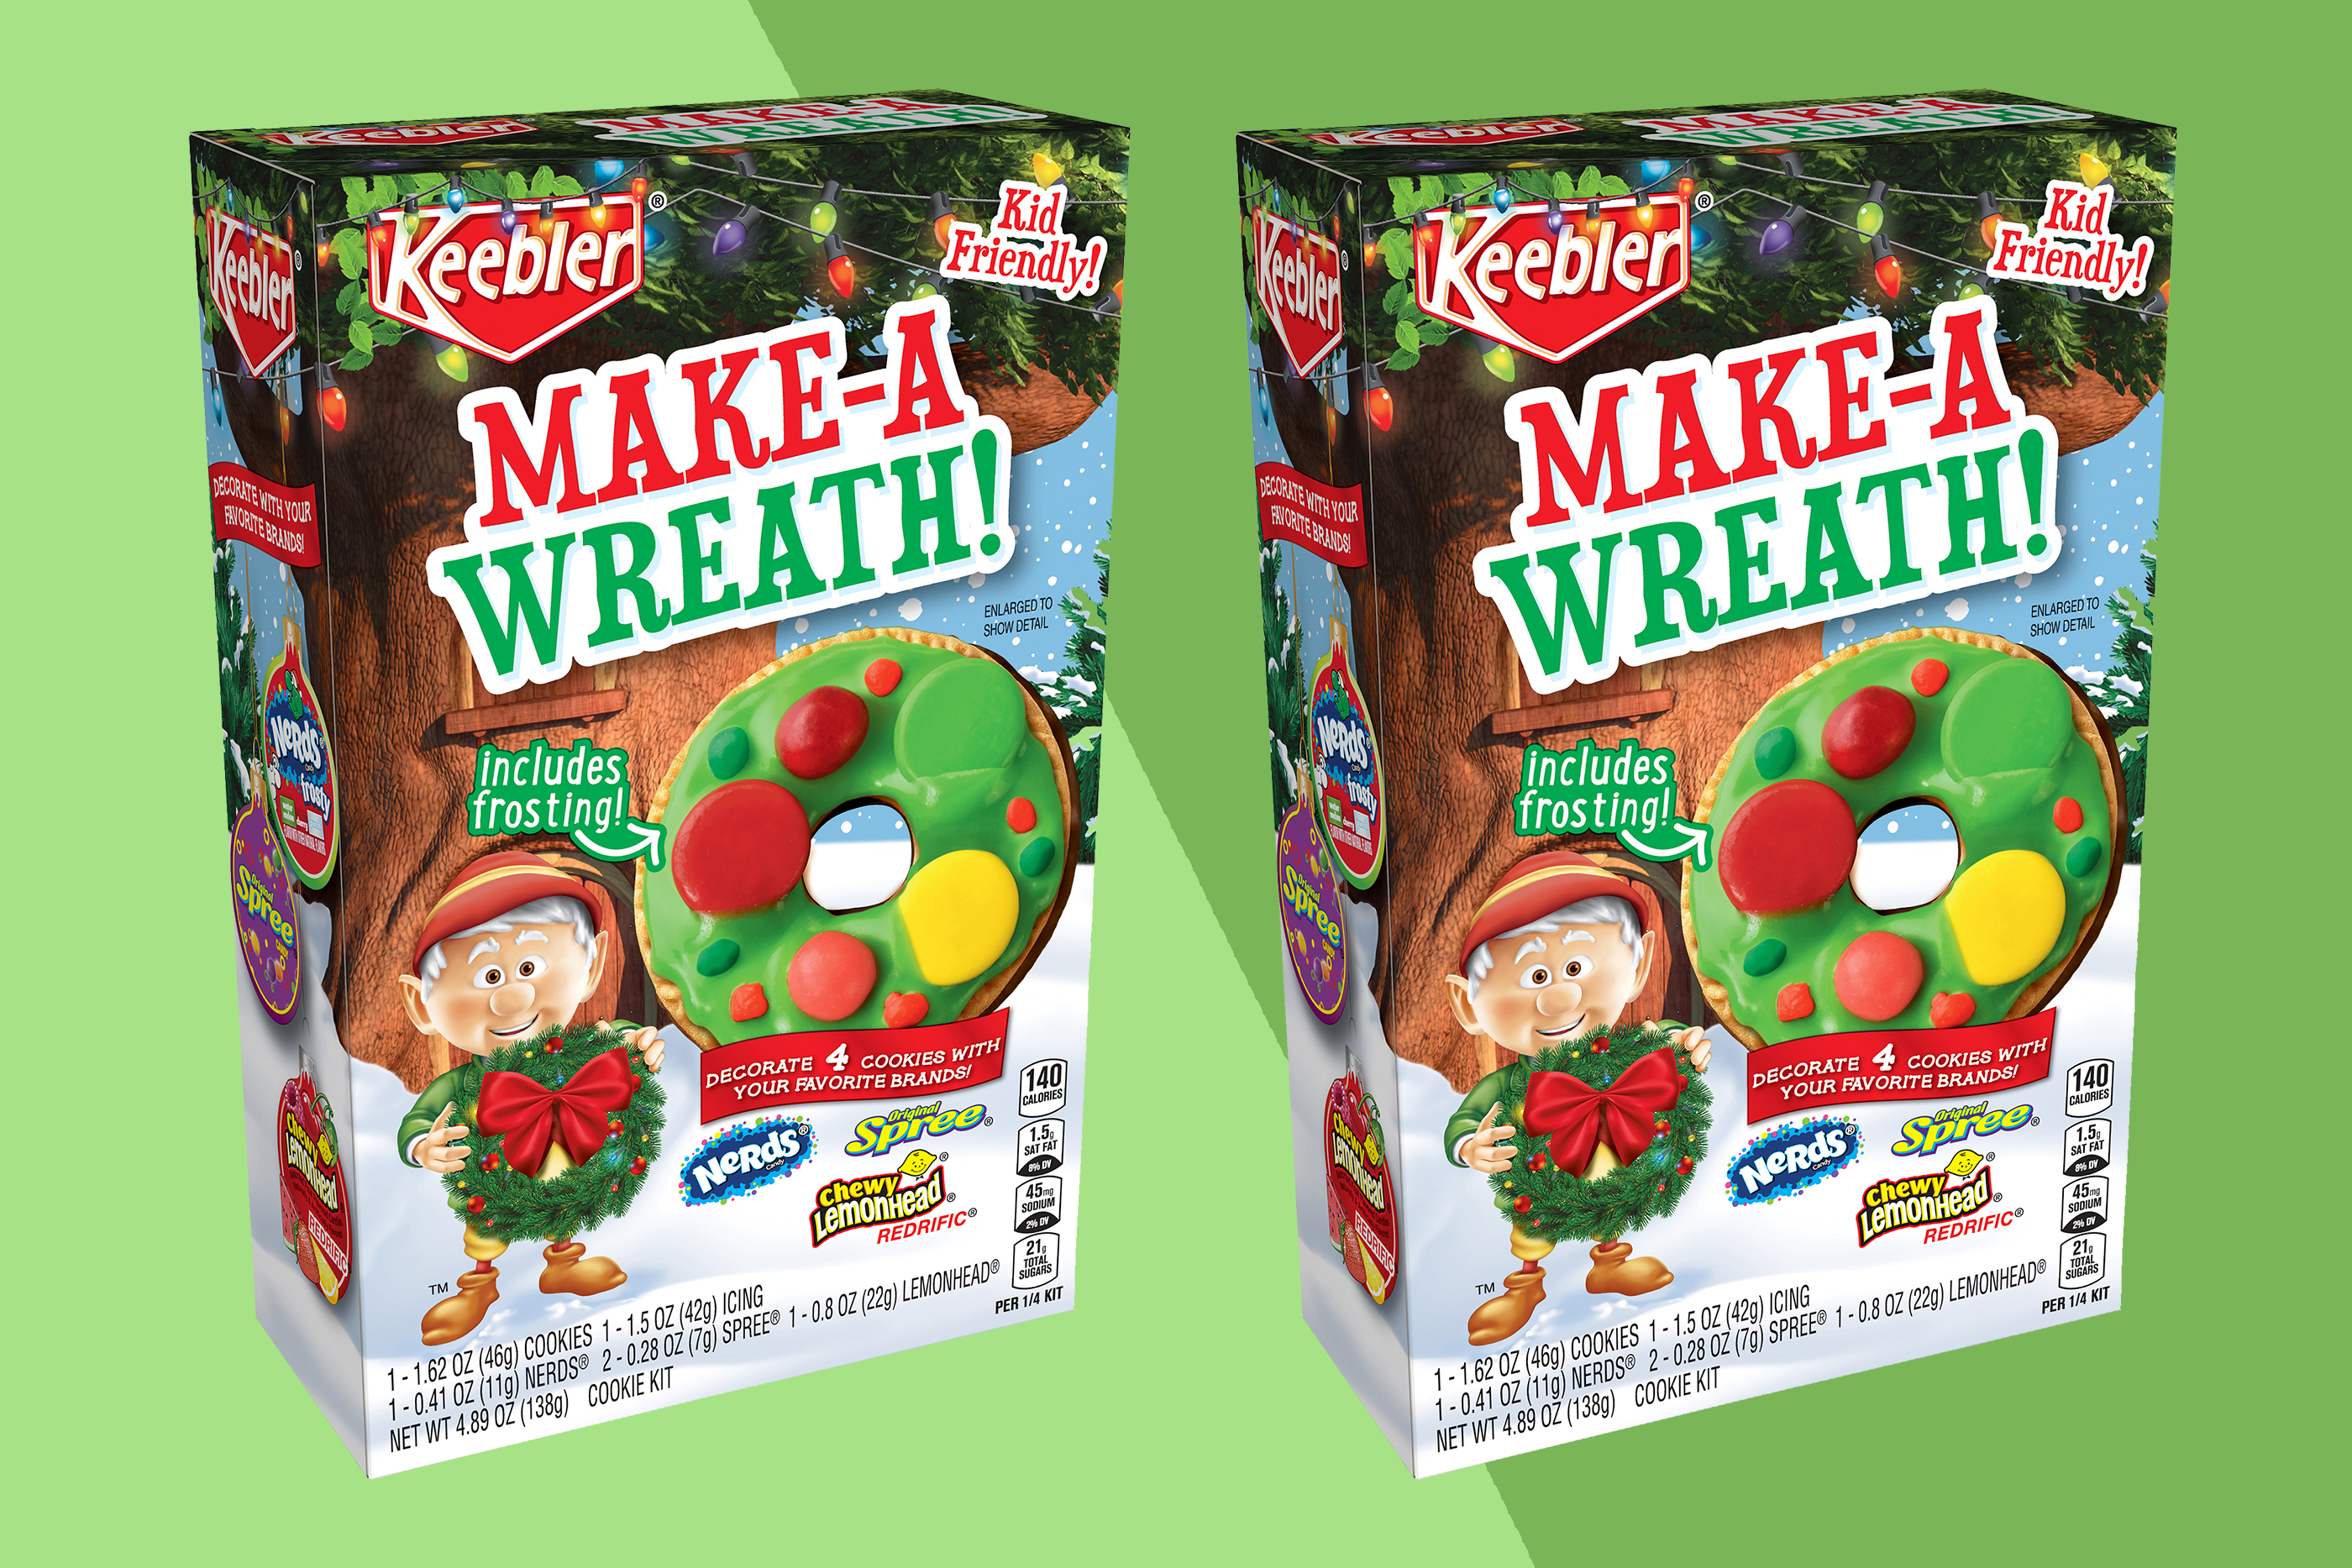 Keebler Make-a-Wreath Cookie Decorating Kits on two-tone green background